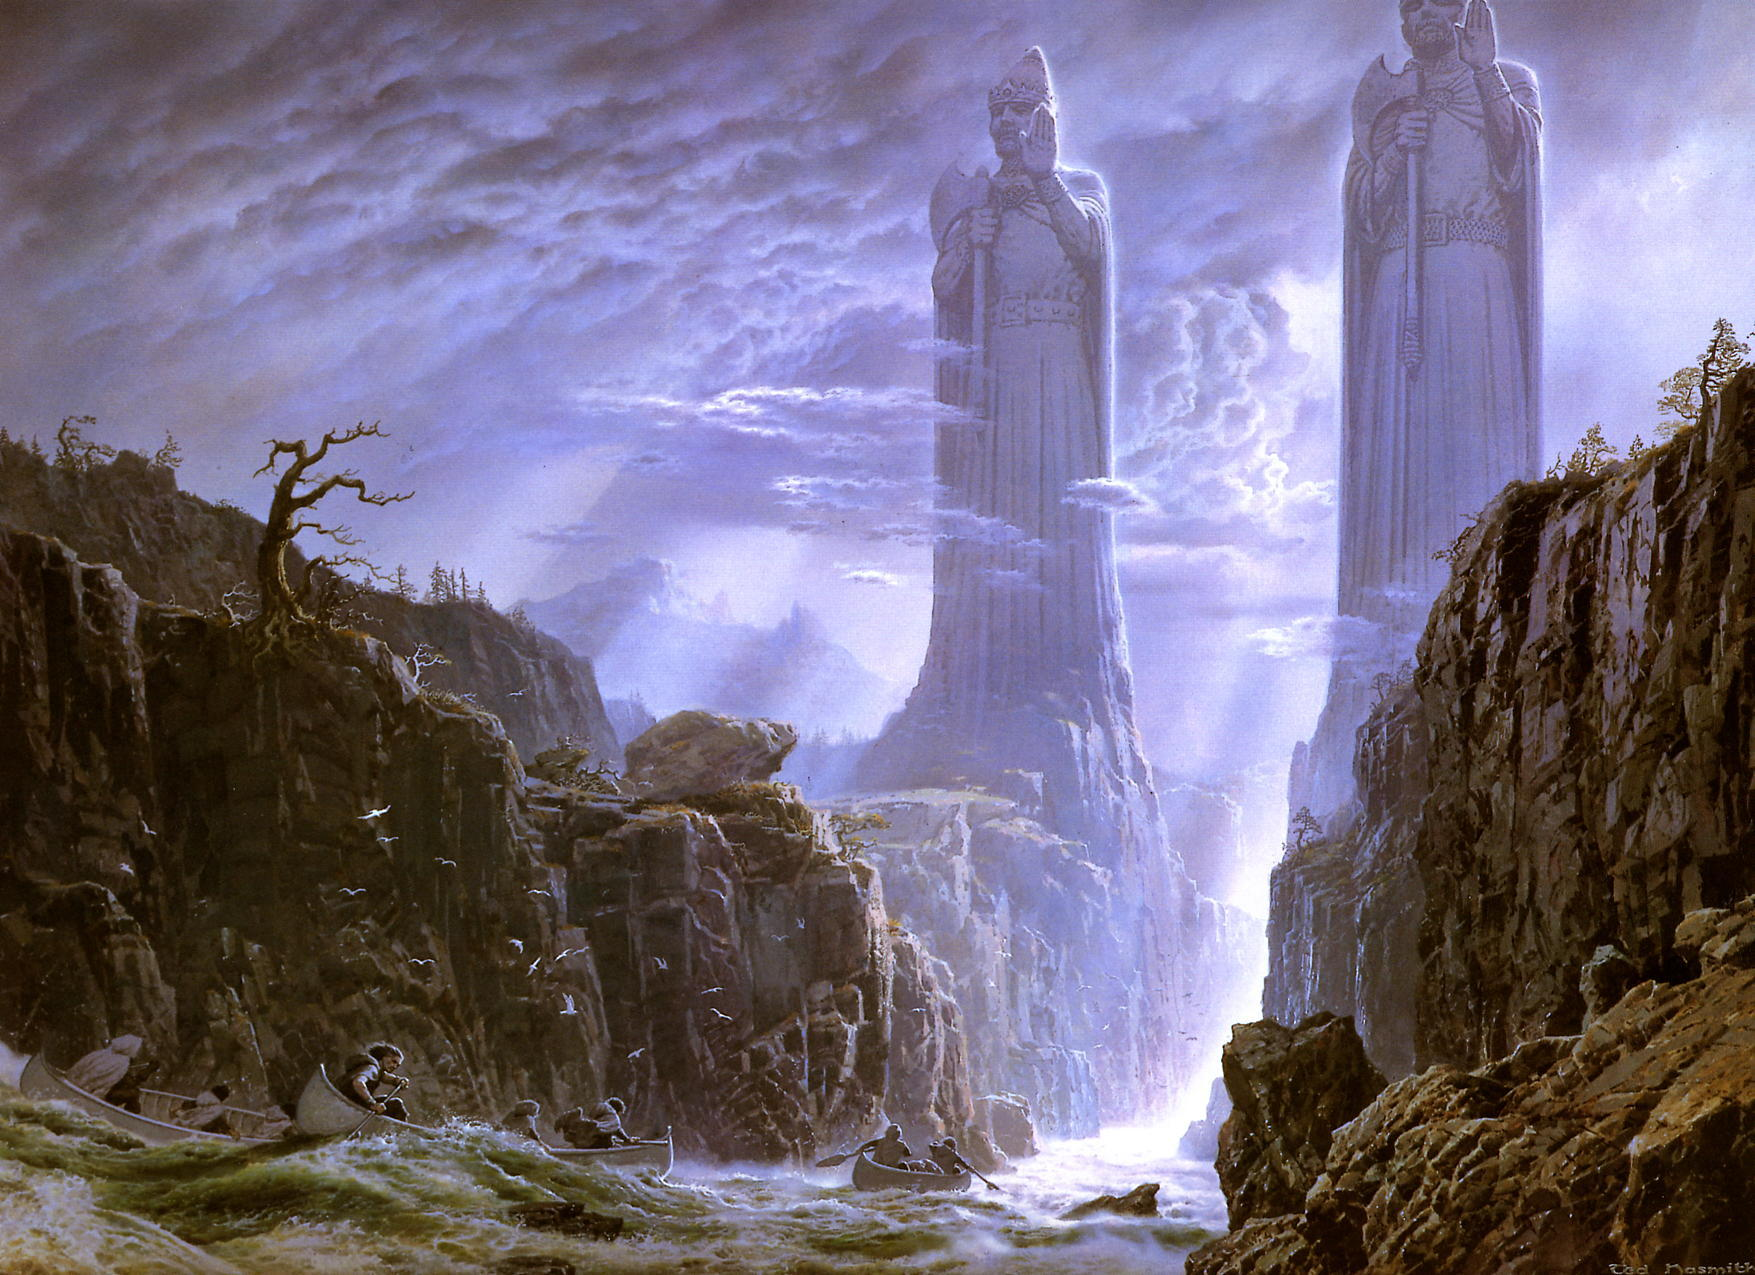 Lord of the Rings Wallpaper and Background Image ...